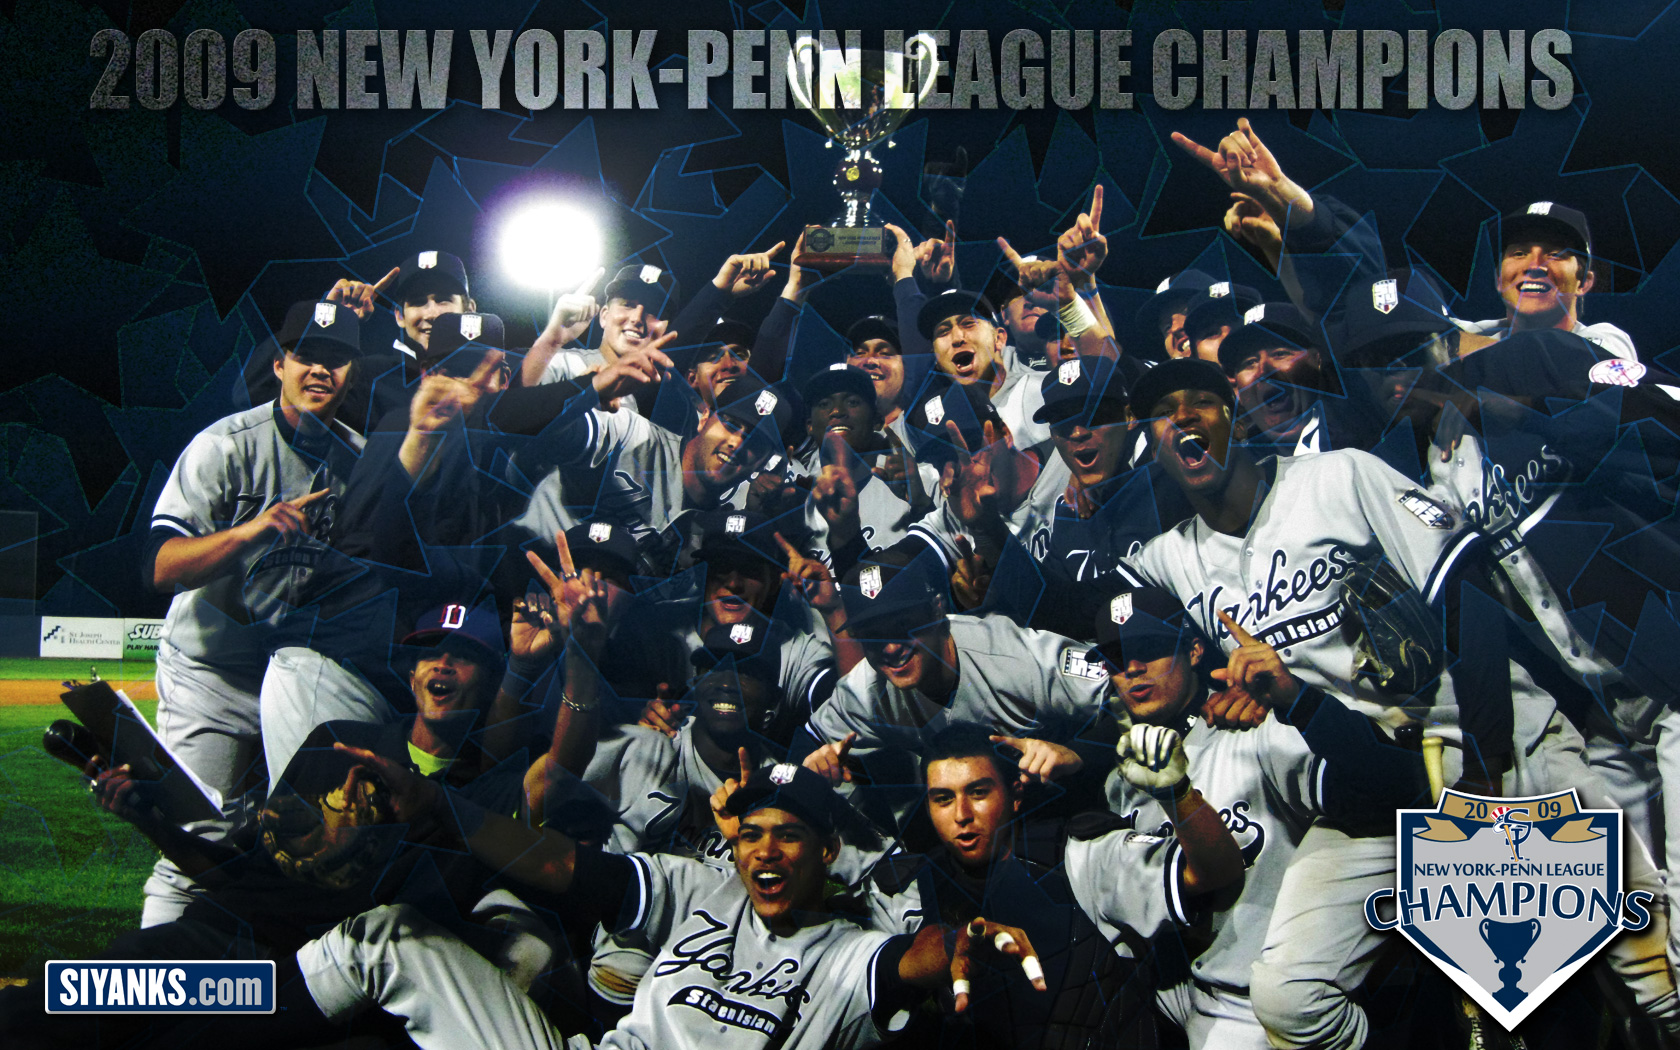 Wallpapers Staten Island Yankees Group Outings - Map of new york penn league teams